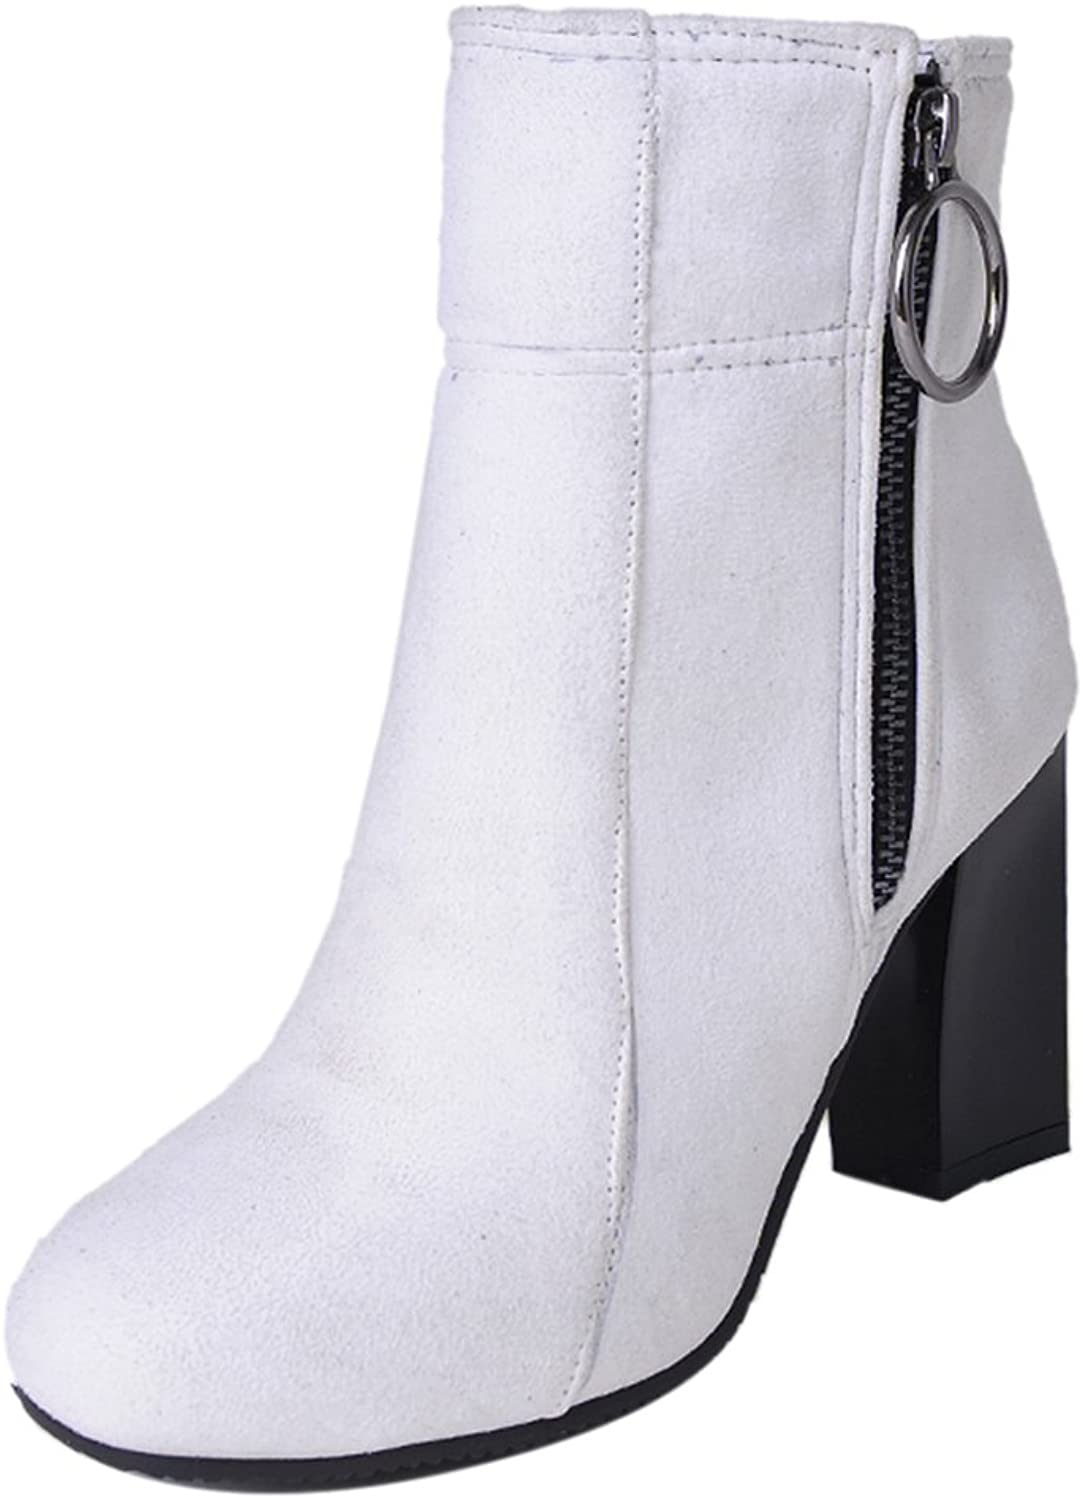 TAOFFEN Women's Ankle Boots with Zipper